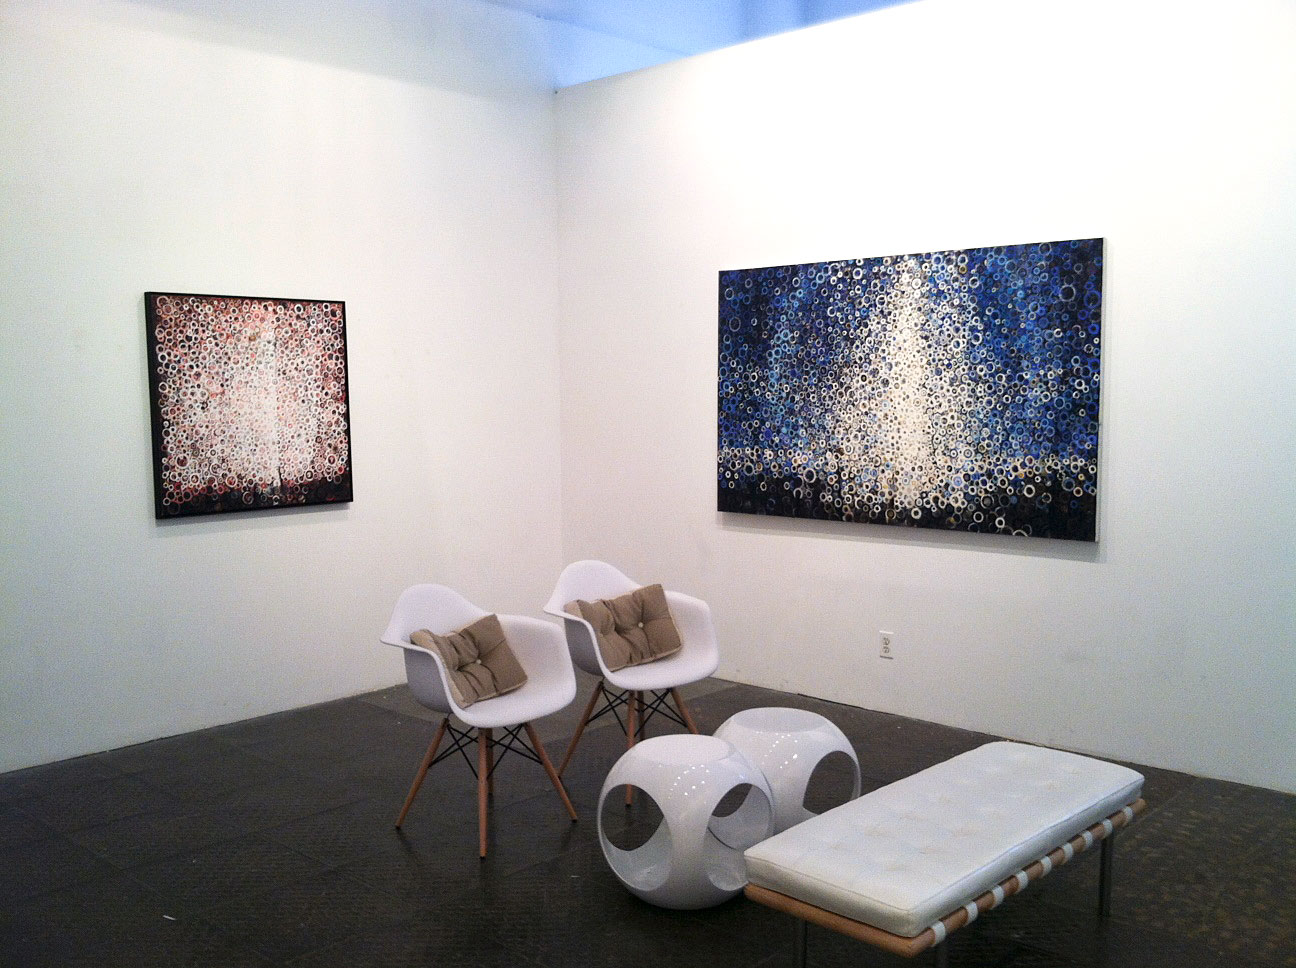 Summer show at Blank Space Gallery, Manhattan, 2012. Paintings by Randall Stoltzfus